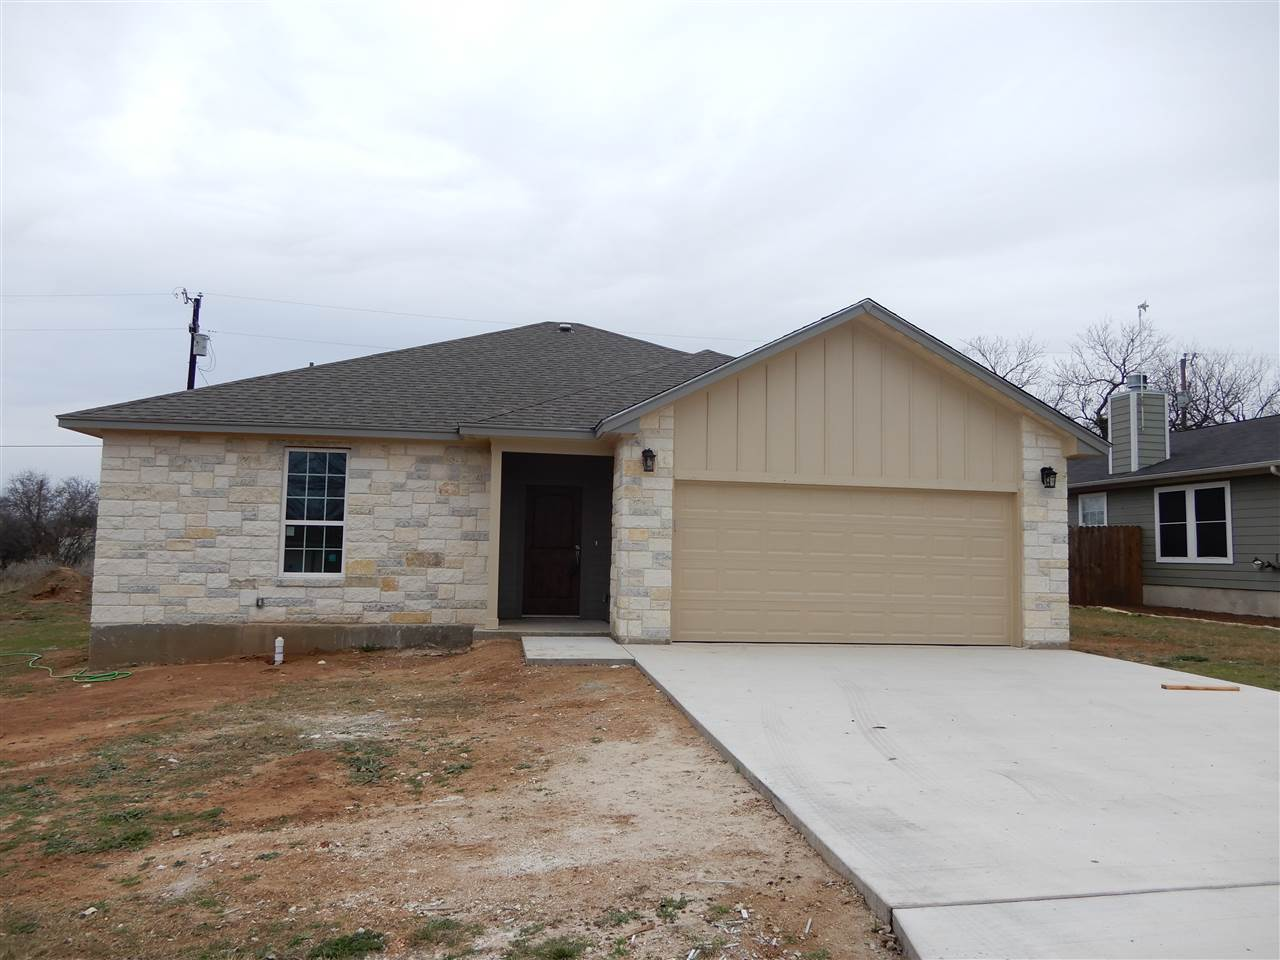 Single Family Home for Sale at 857 Pecan Lane 857 Pecan Lane Cottonwood Shores, Texas 78657 United States